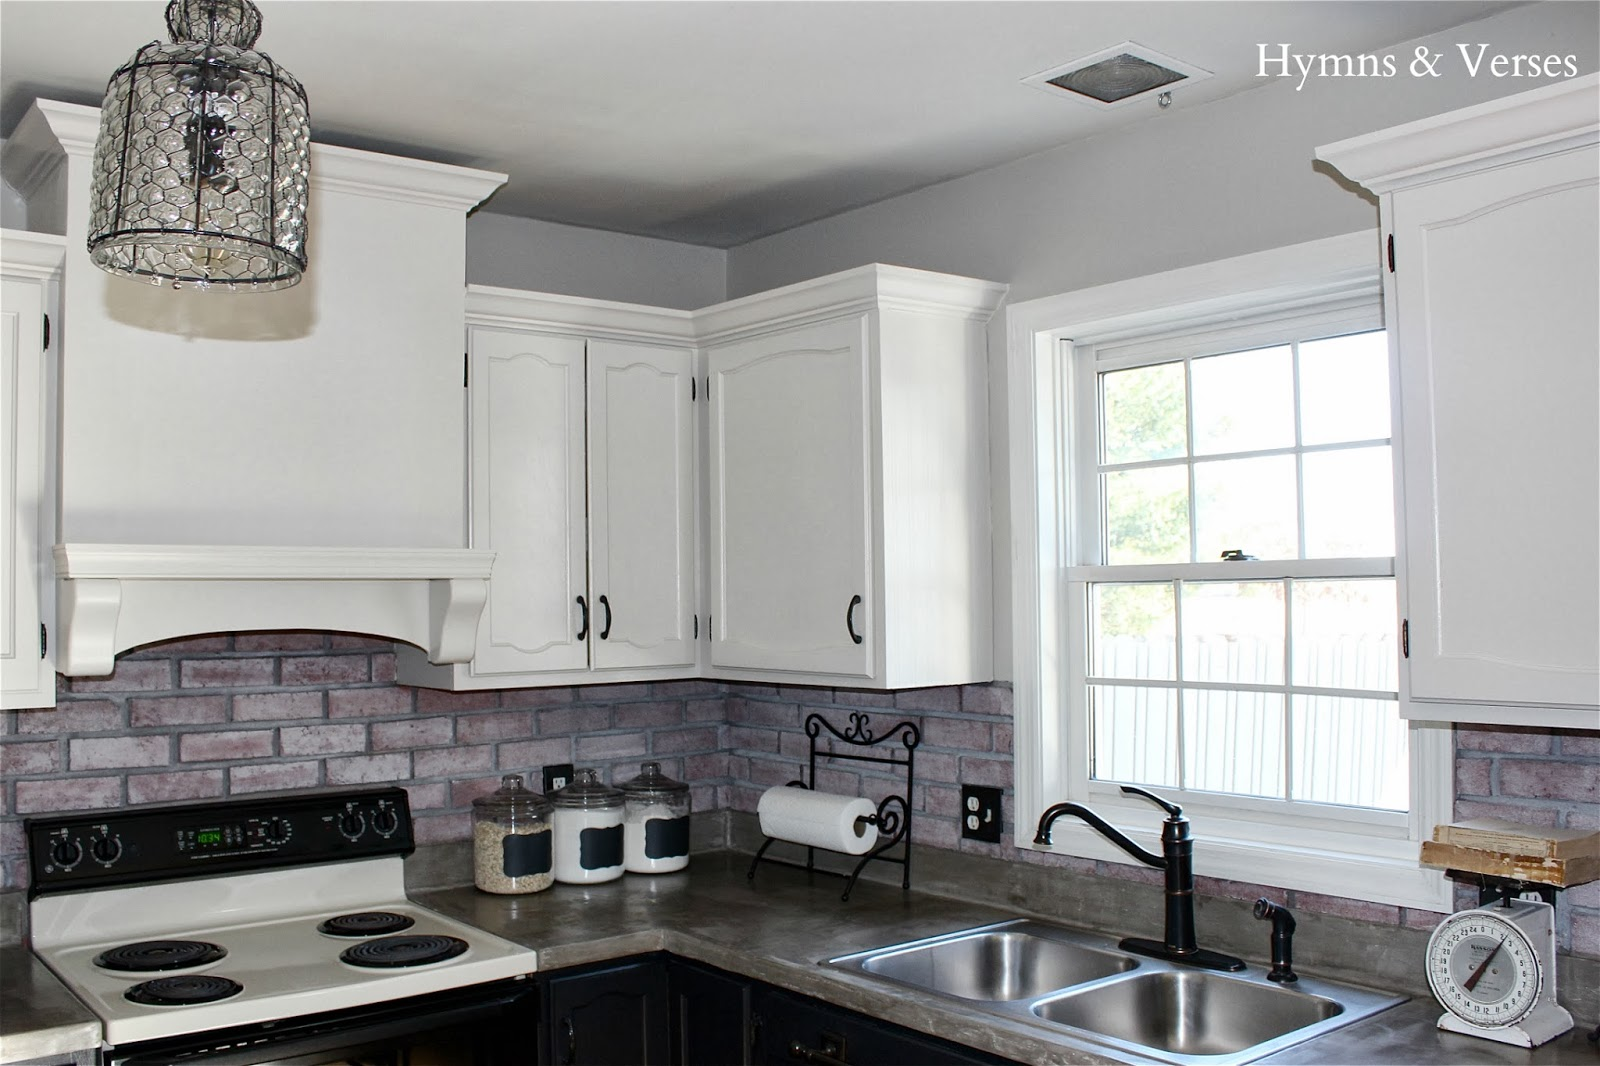 Our DIY Kitchen Makeover - Hymns and Verses Kitchen Makeover Ideas With Brick on brick style backsplash, brick paver backsplash, brick pattern backsplash,